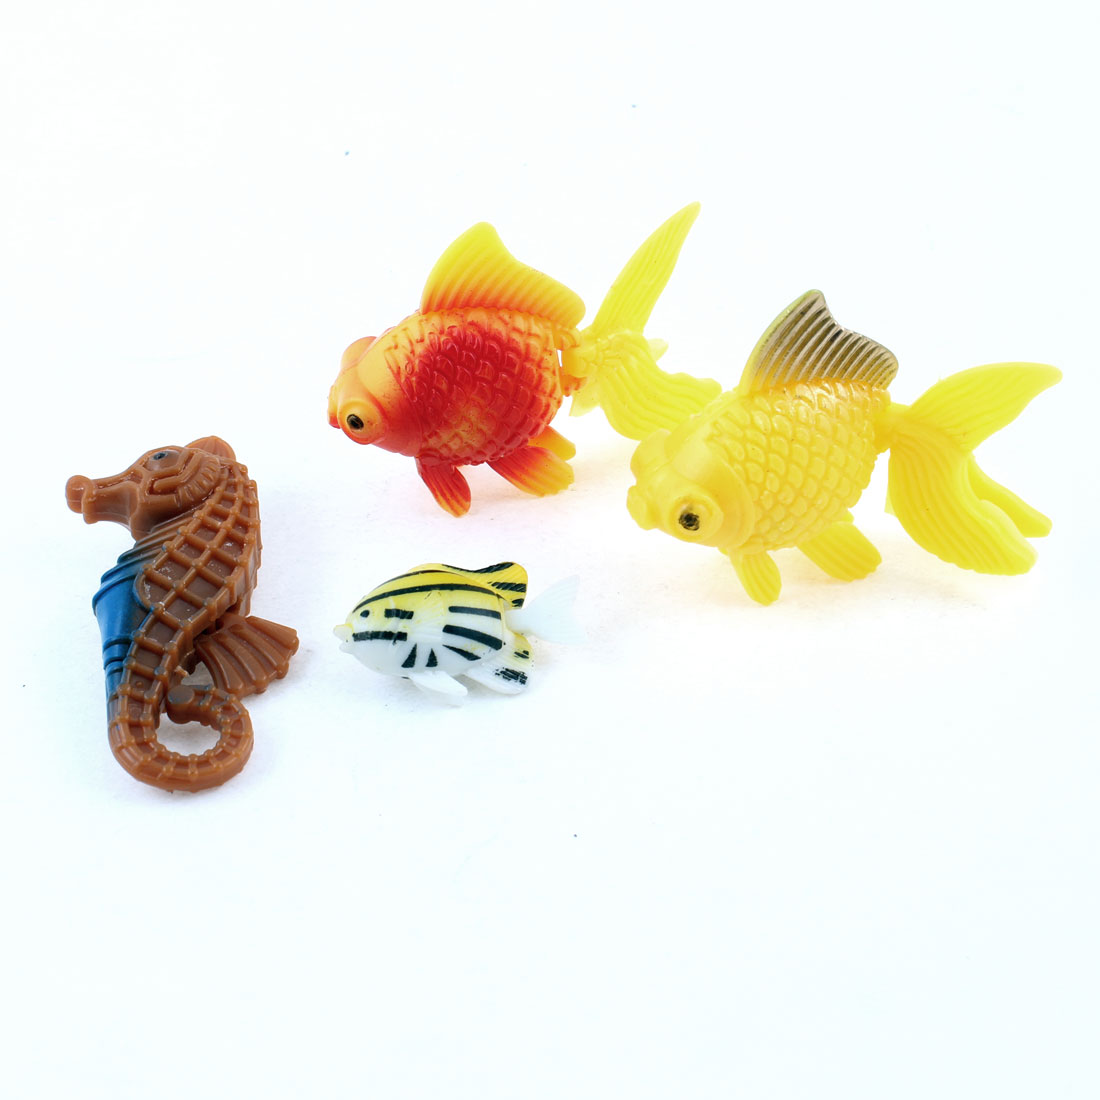 4 Pcs Aquarium Wiggly Tail Simulation Swimming Fishes Yellow Red